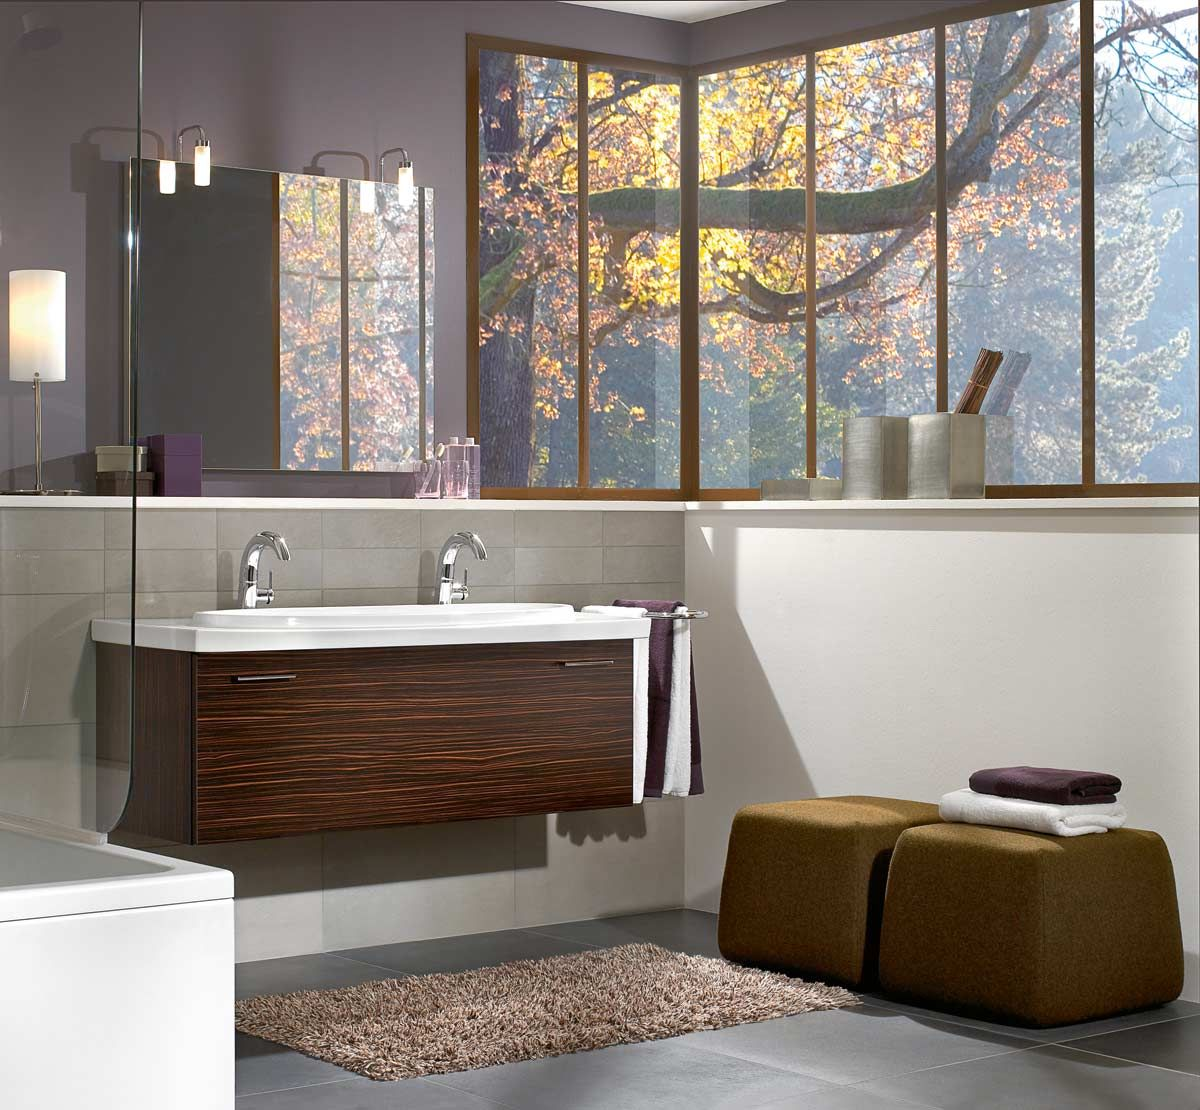 villeroy boch central line furniture in maccasser - Villeroy And Boch Bathroom Furniture